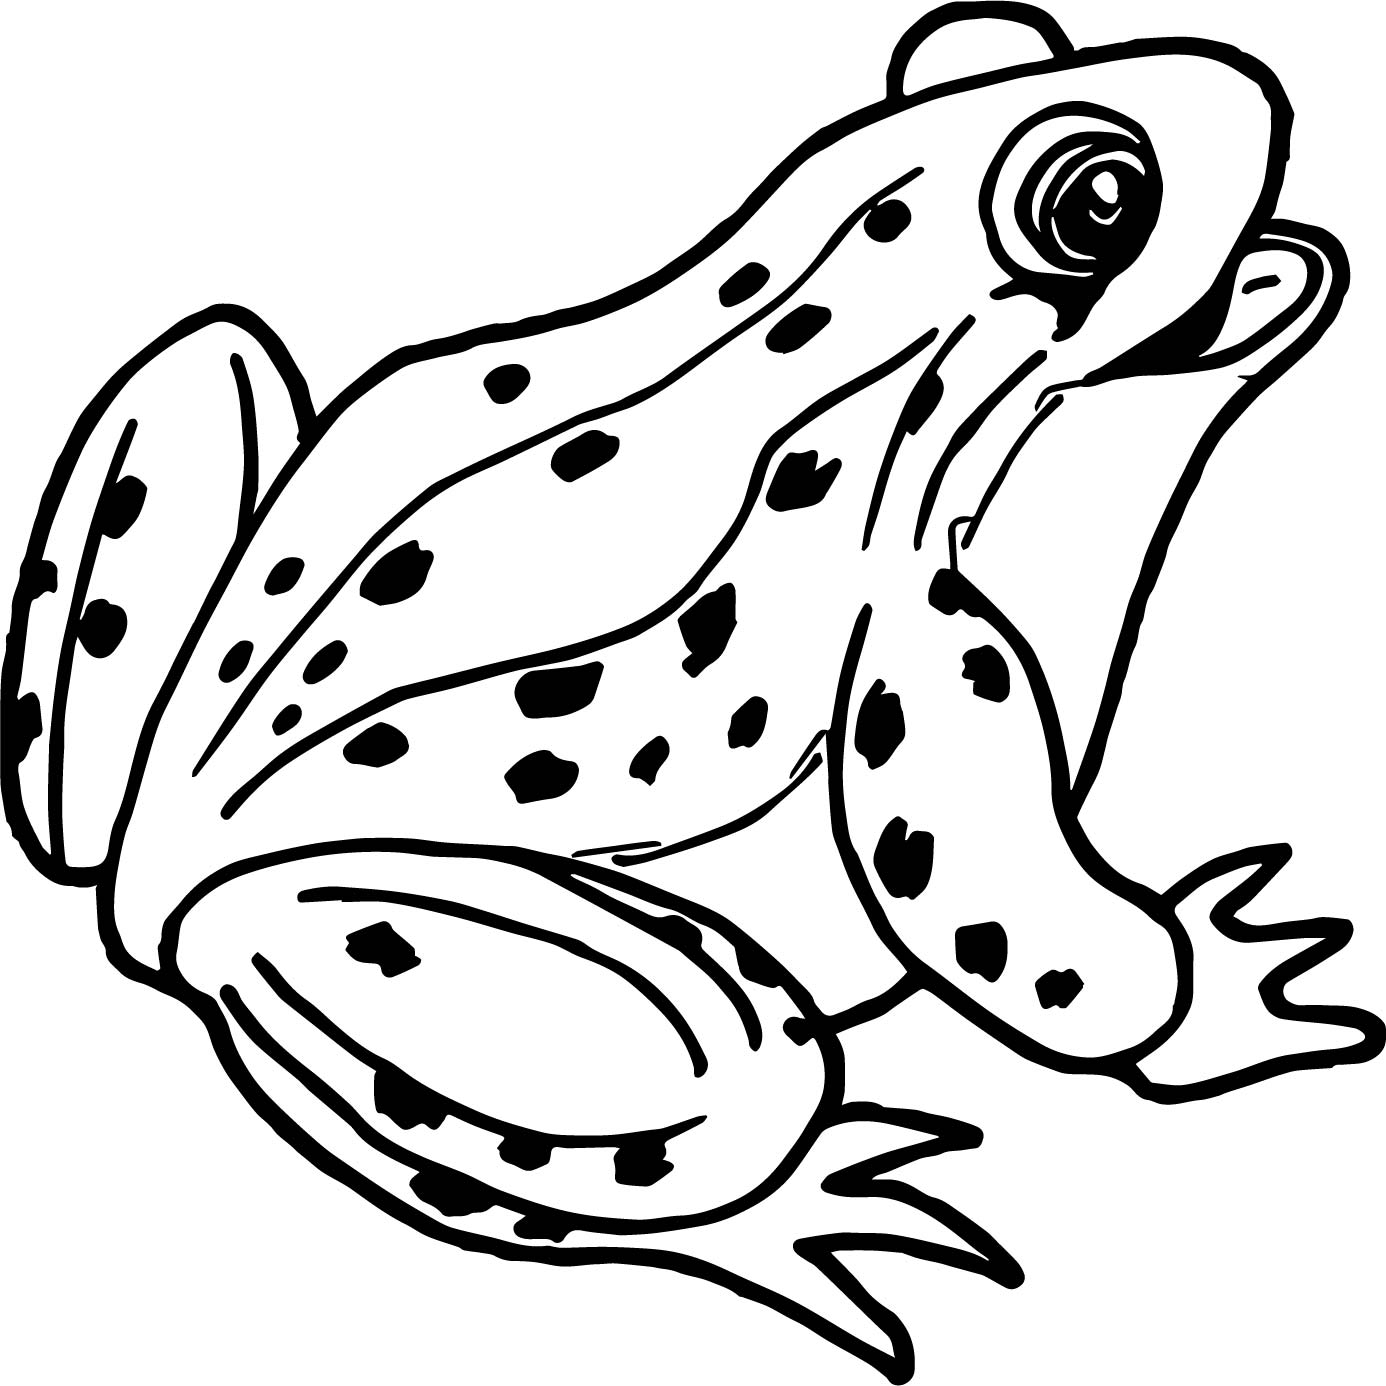 Frog Outline | Free download best Frog Outline on ...